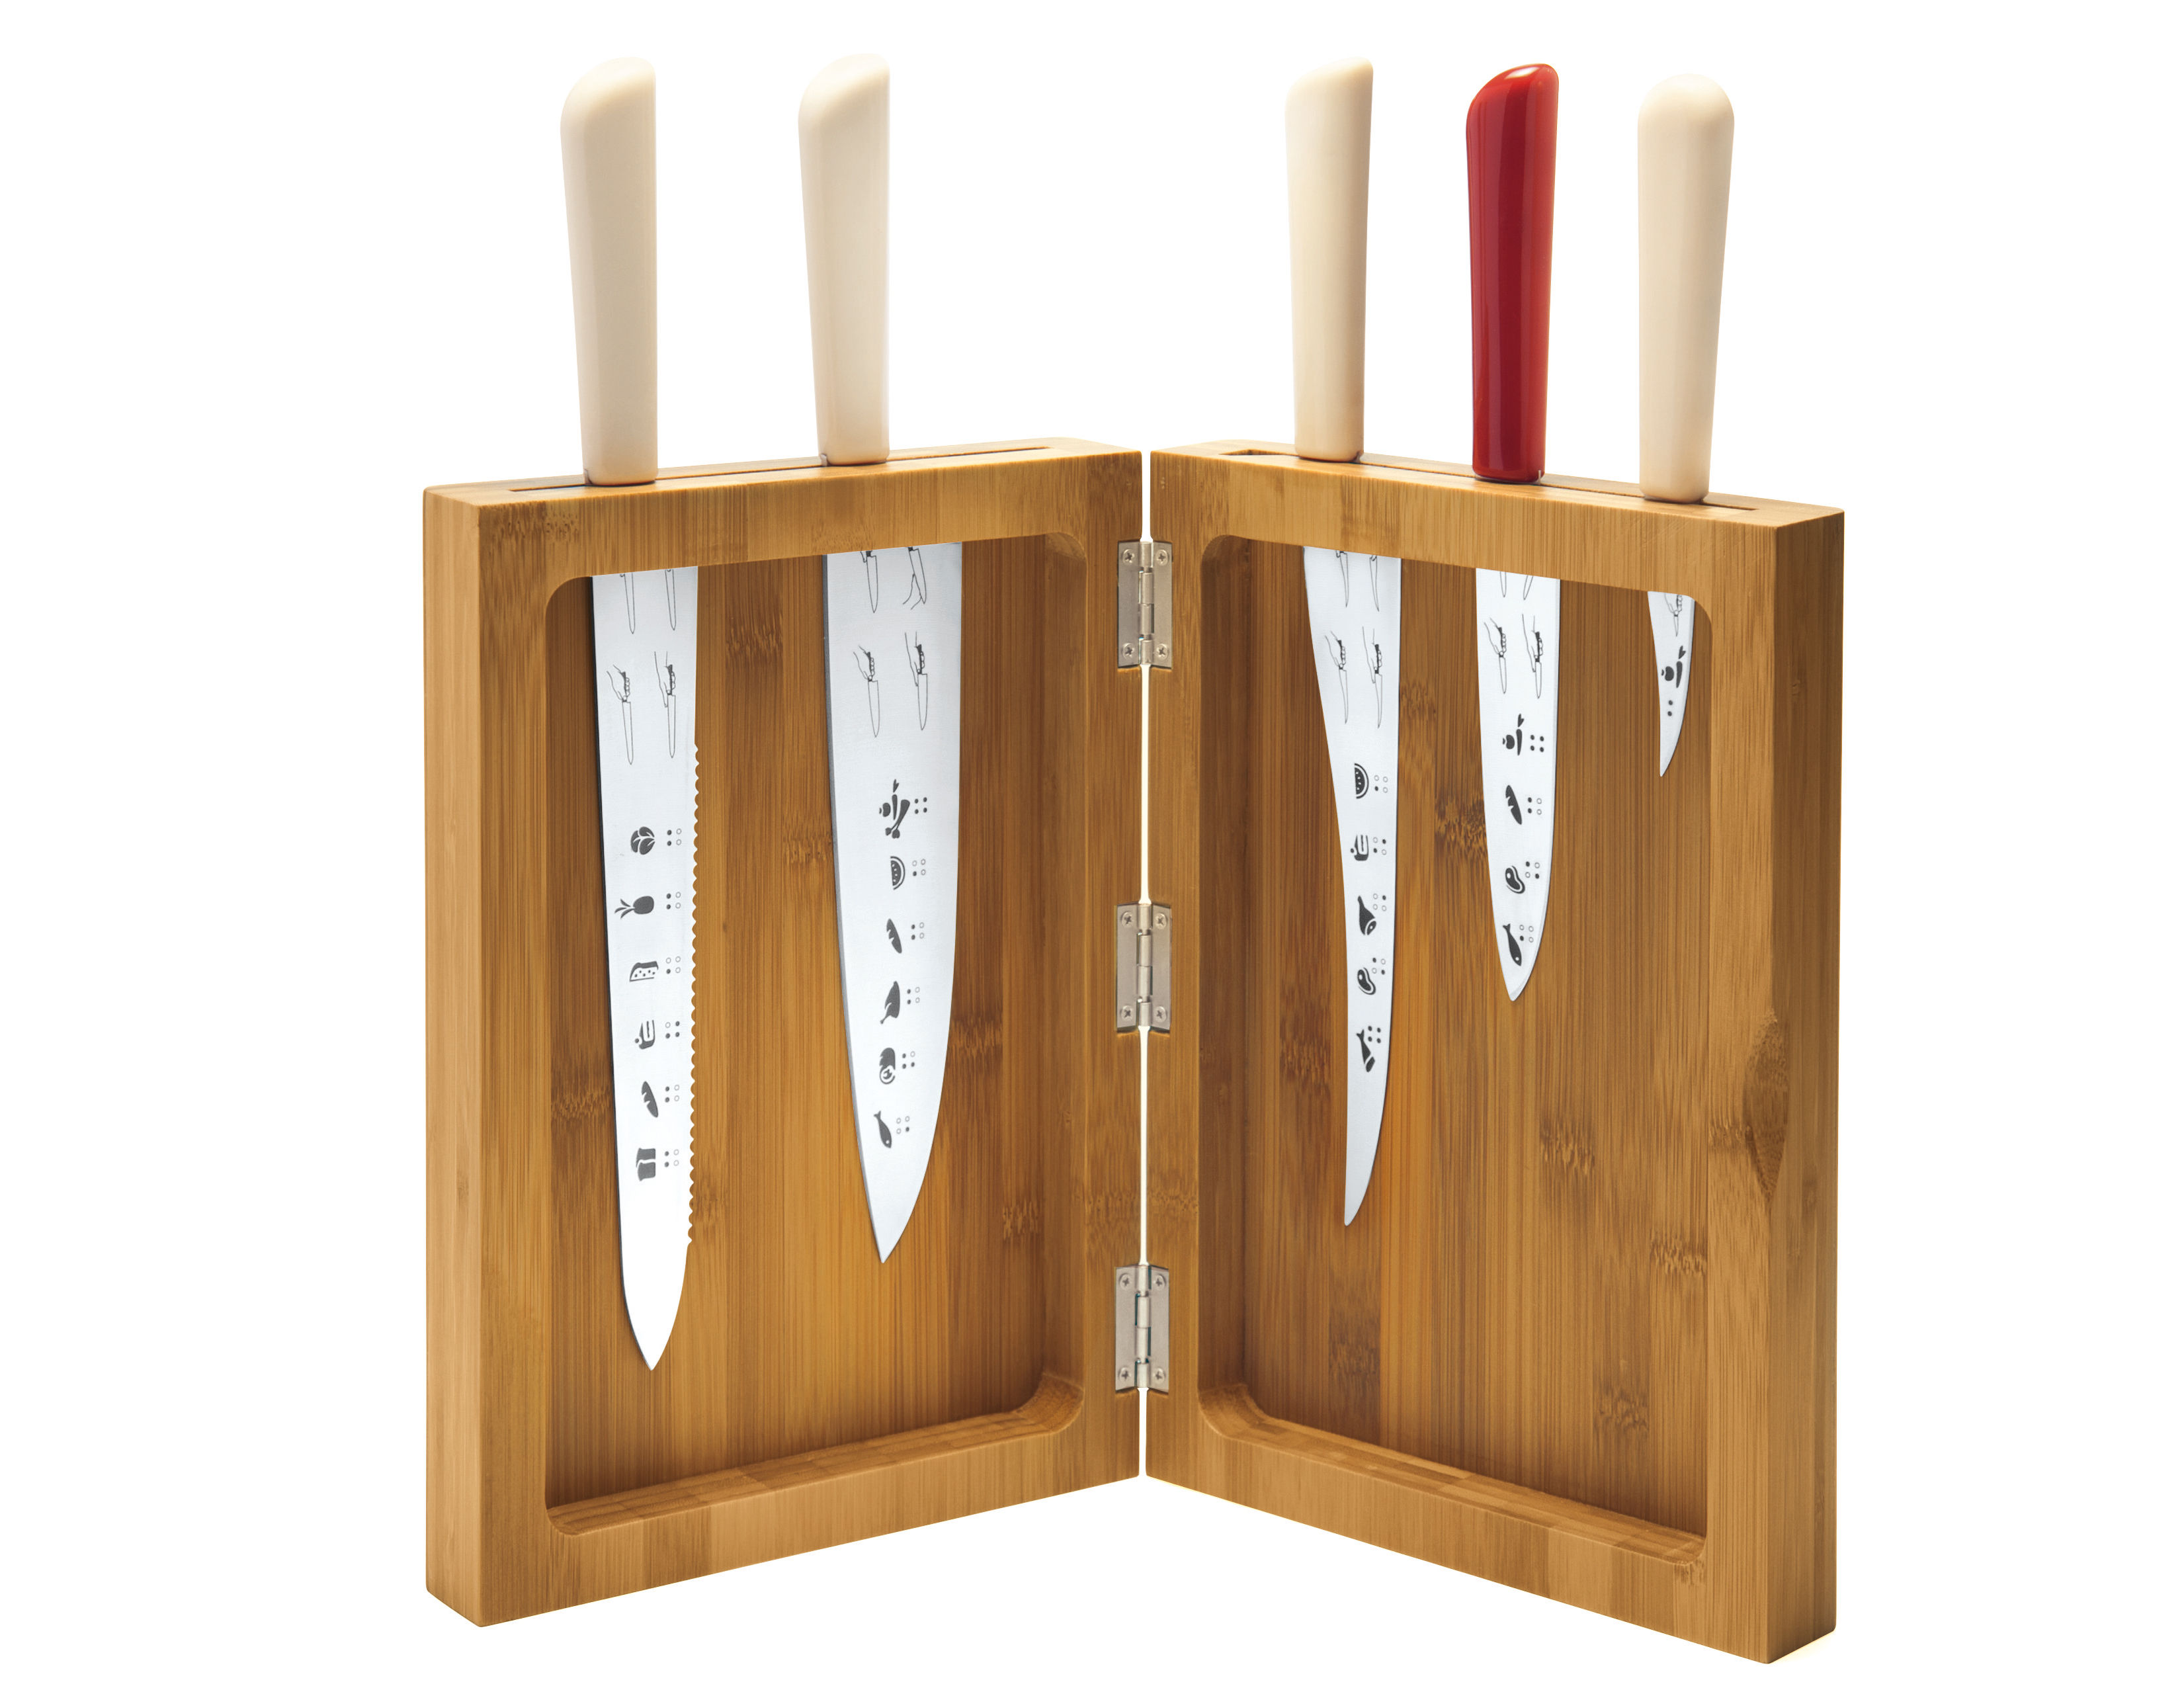 Kitchenware - Kitchen Knives - K-block Knife stand -  Bamboo wood by Alessi - Bamboo - Bamboo